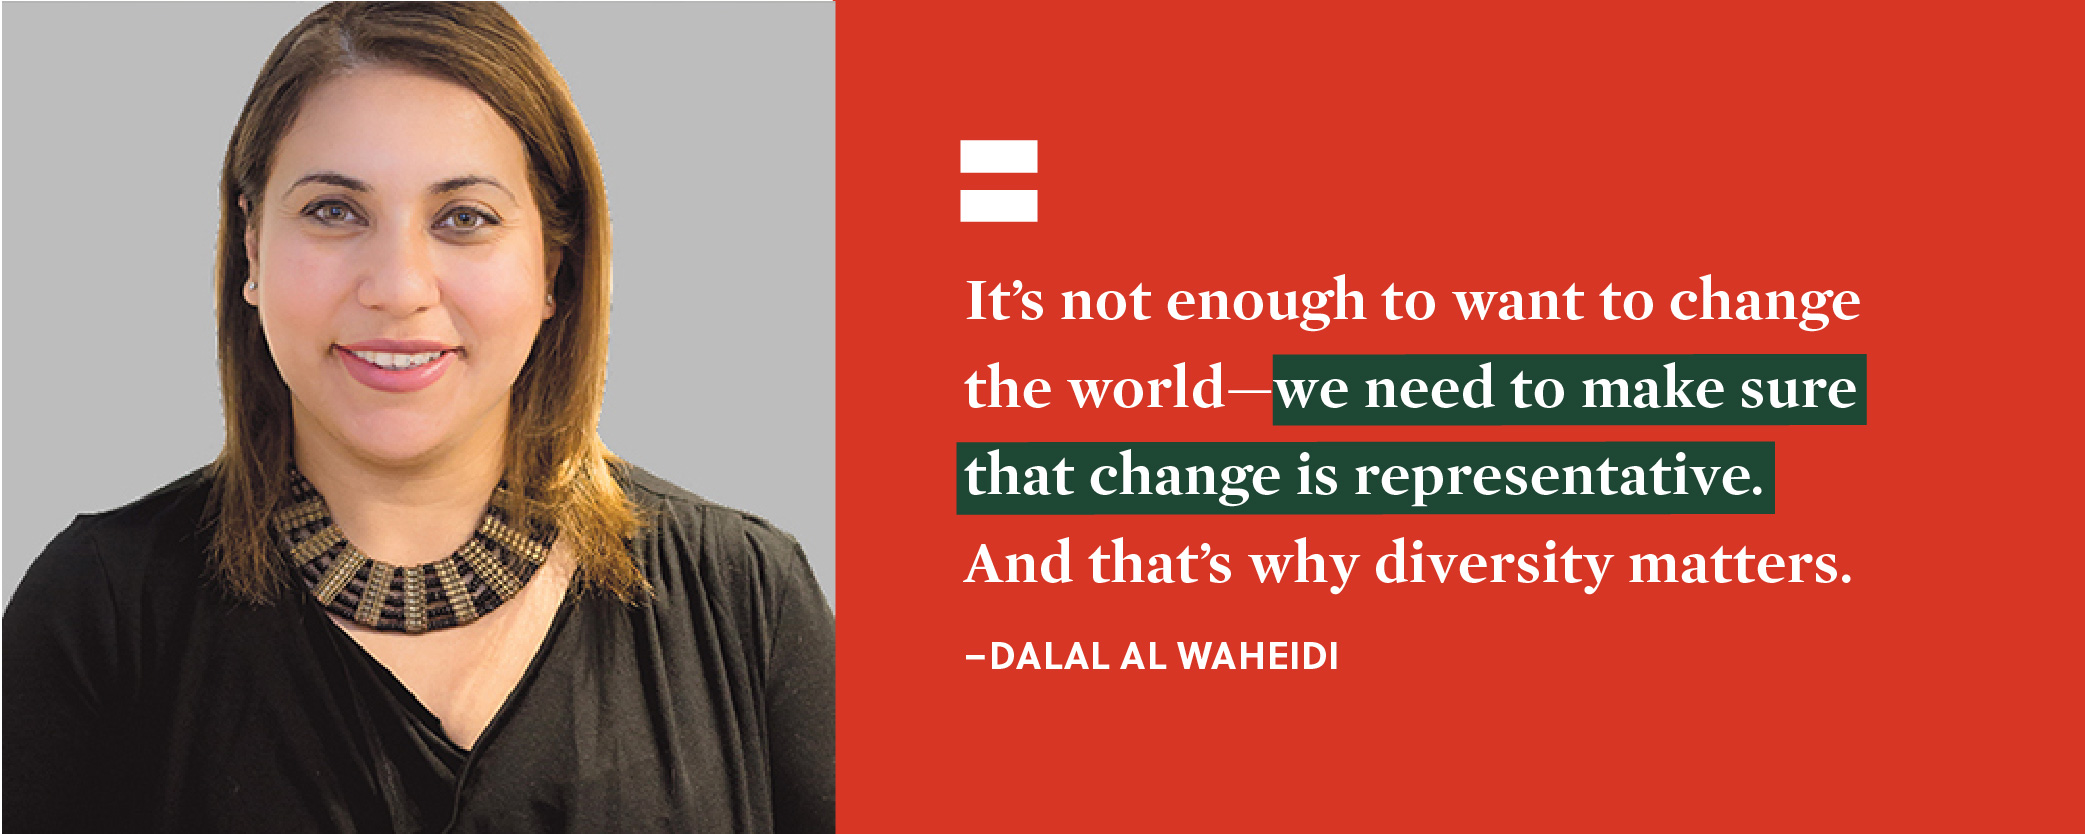 "Photo of Dalal Al-Waheidi with quote: ""It's not enough to want to change the world--we need to make sure that change is representative. That's why diversity matters."""